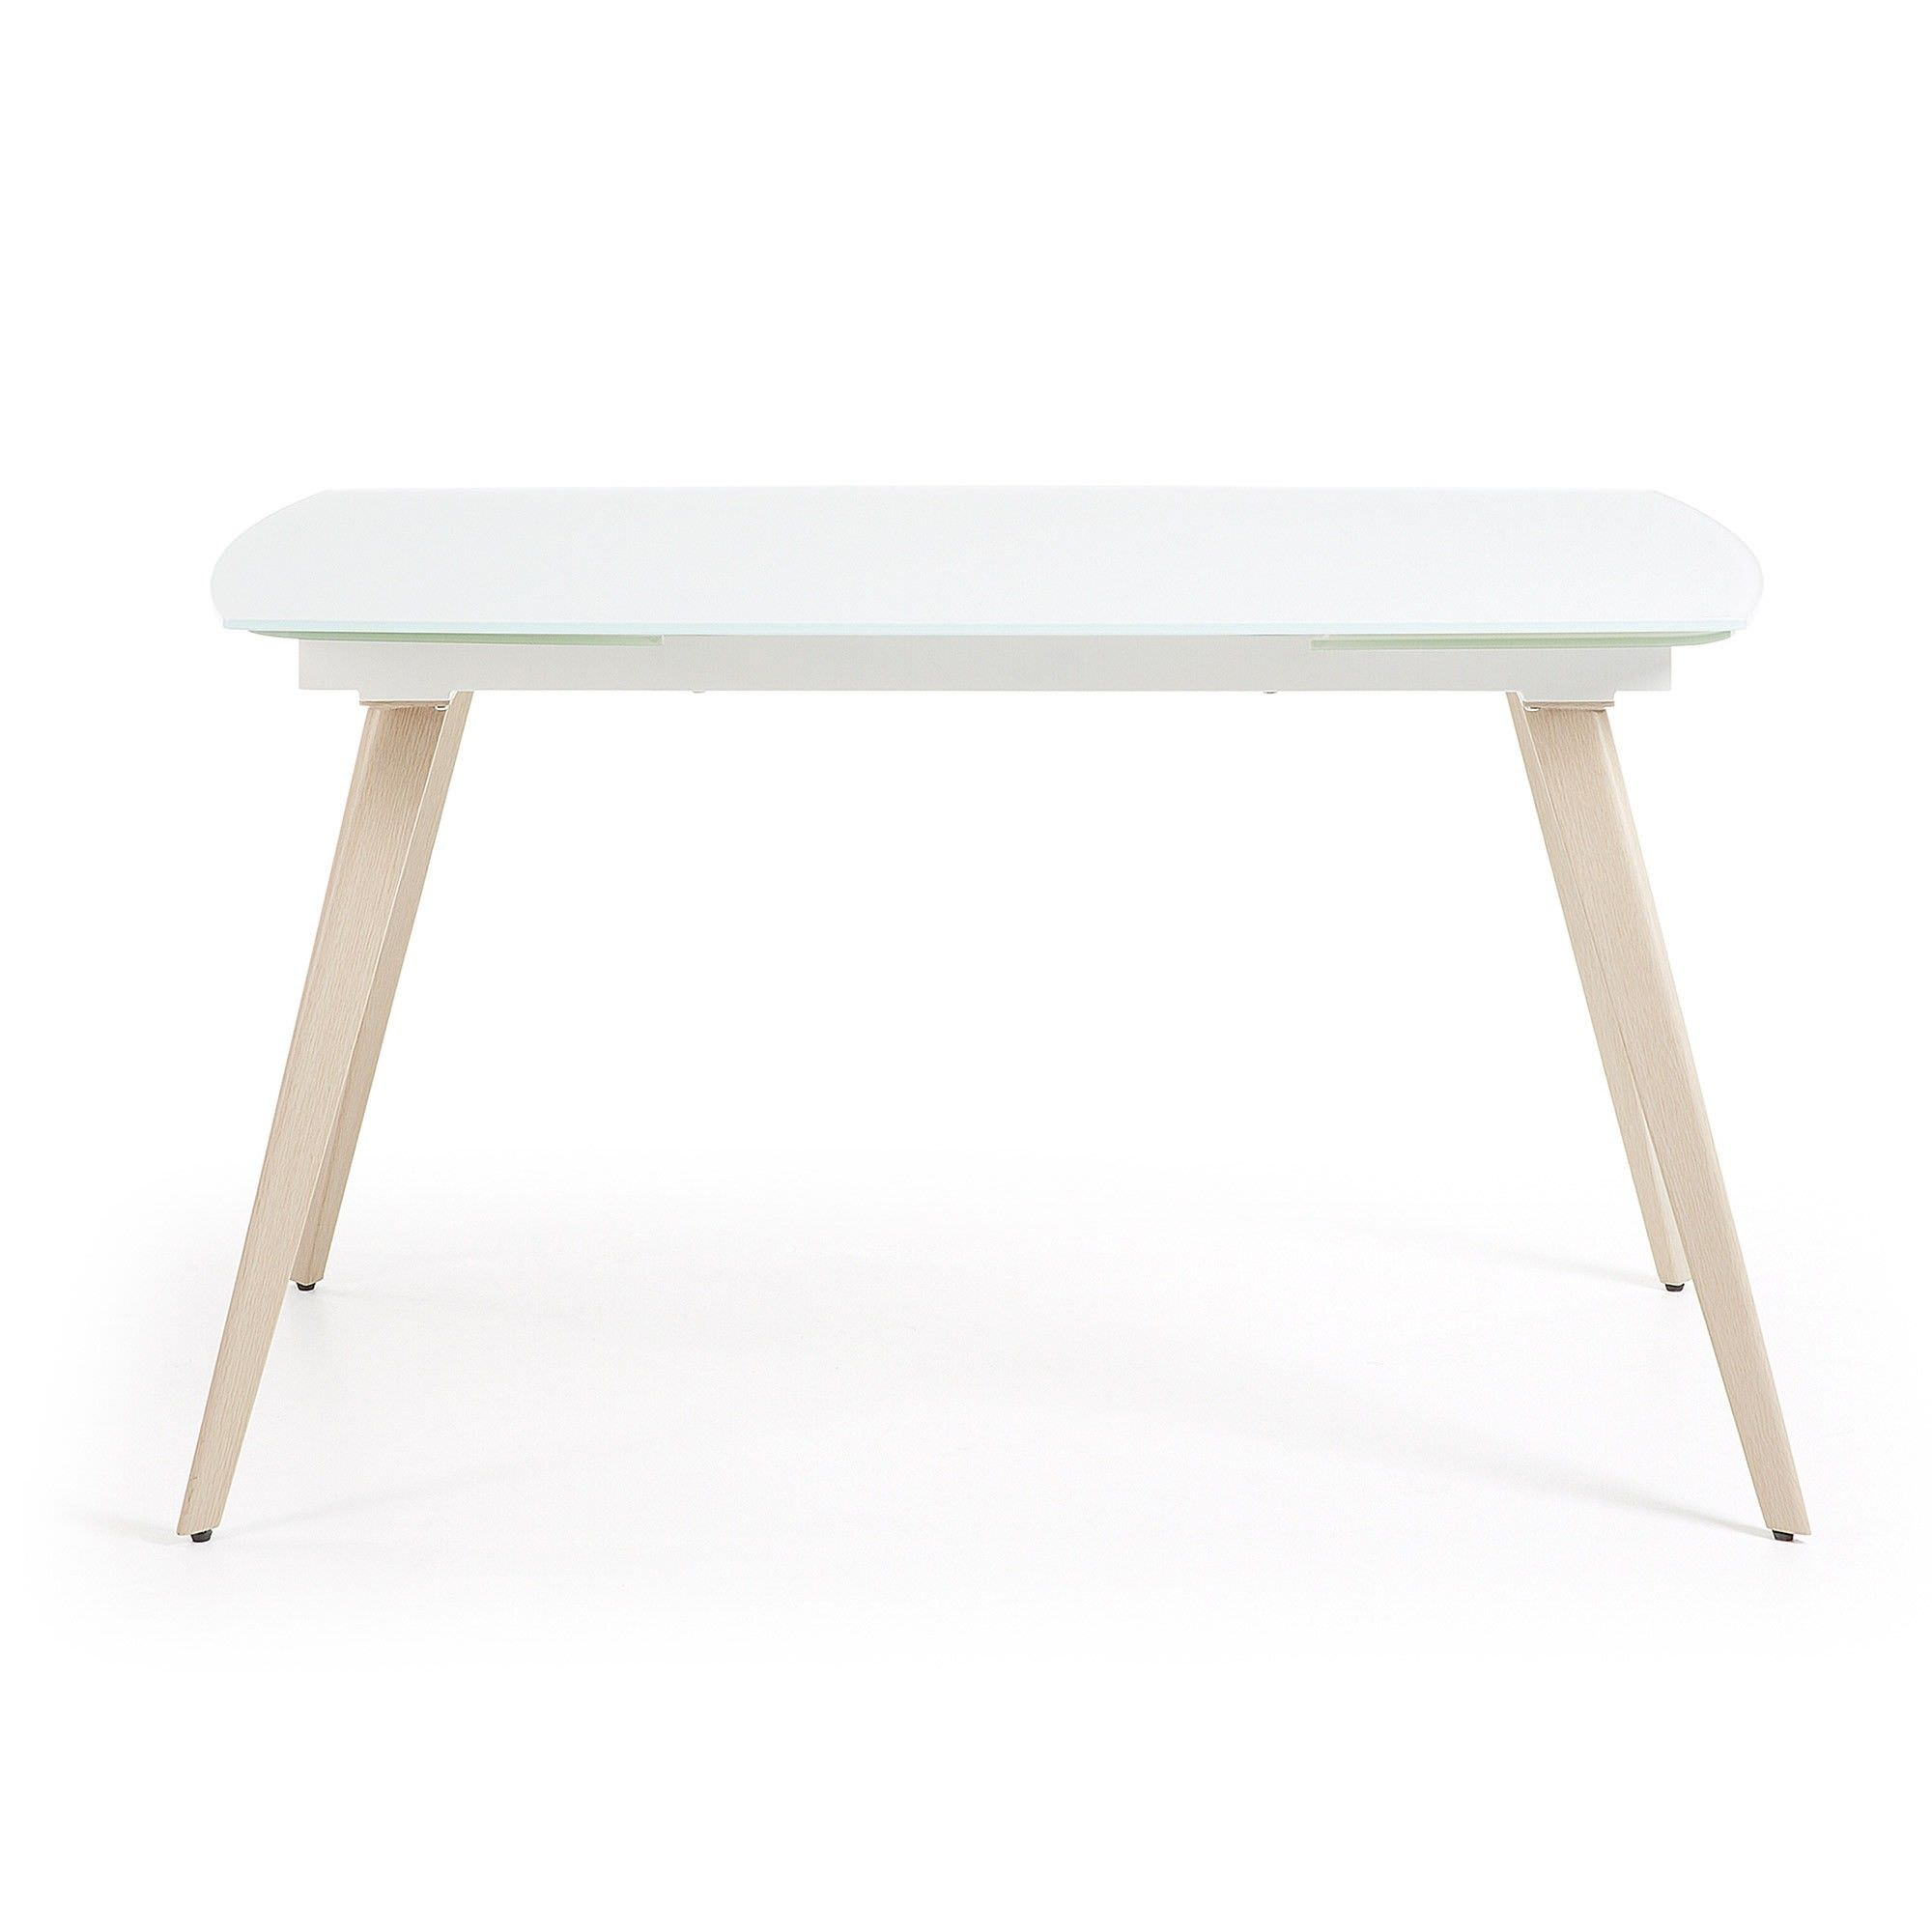 Terra Tempered Glass & Steel Extendable Dining Table, 120-180cm, White / Natural